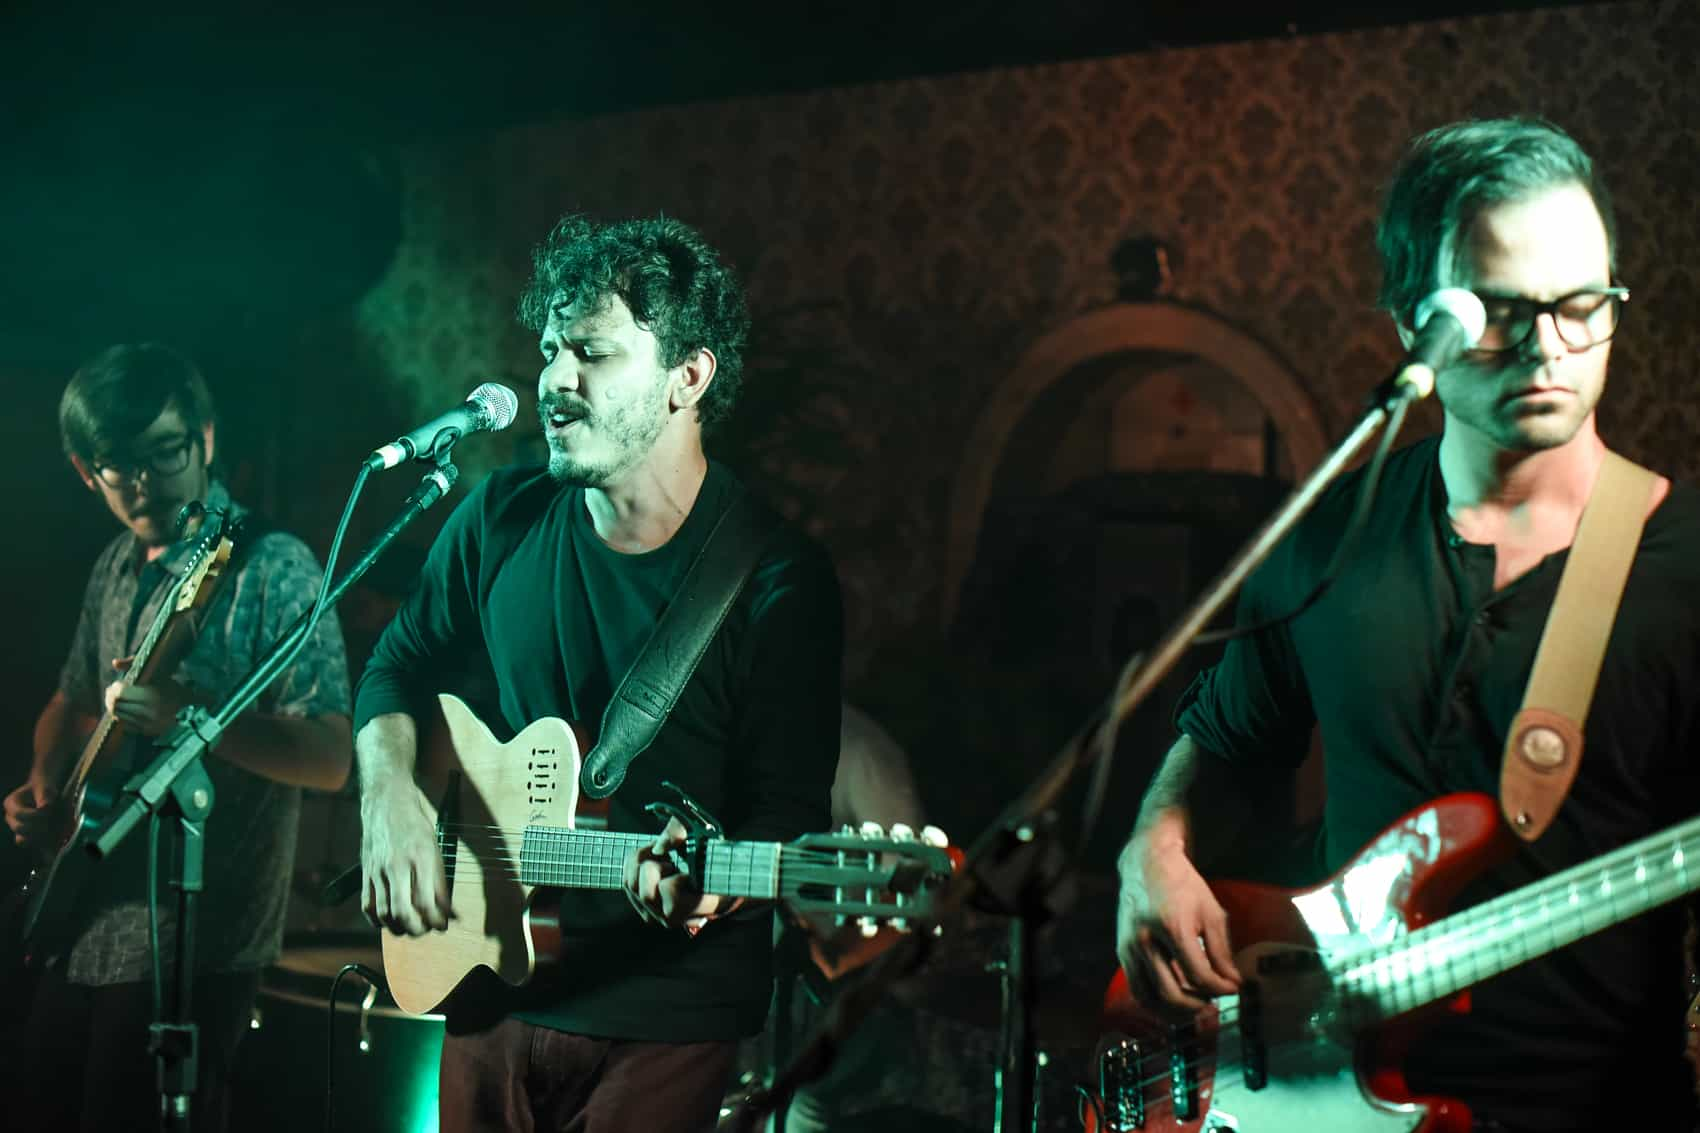 Bird and Fish performs at the Hoxton Pub in Los Yoses, December 3, 2015.